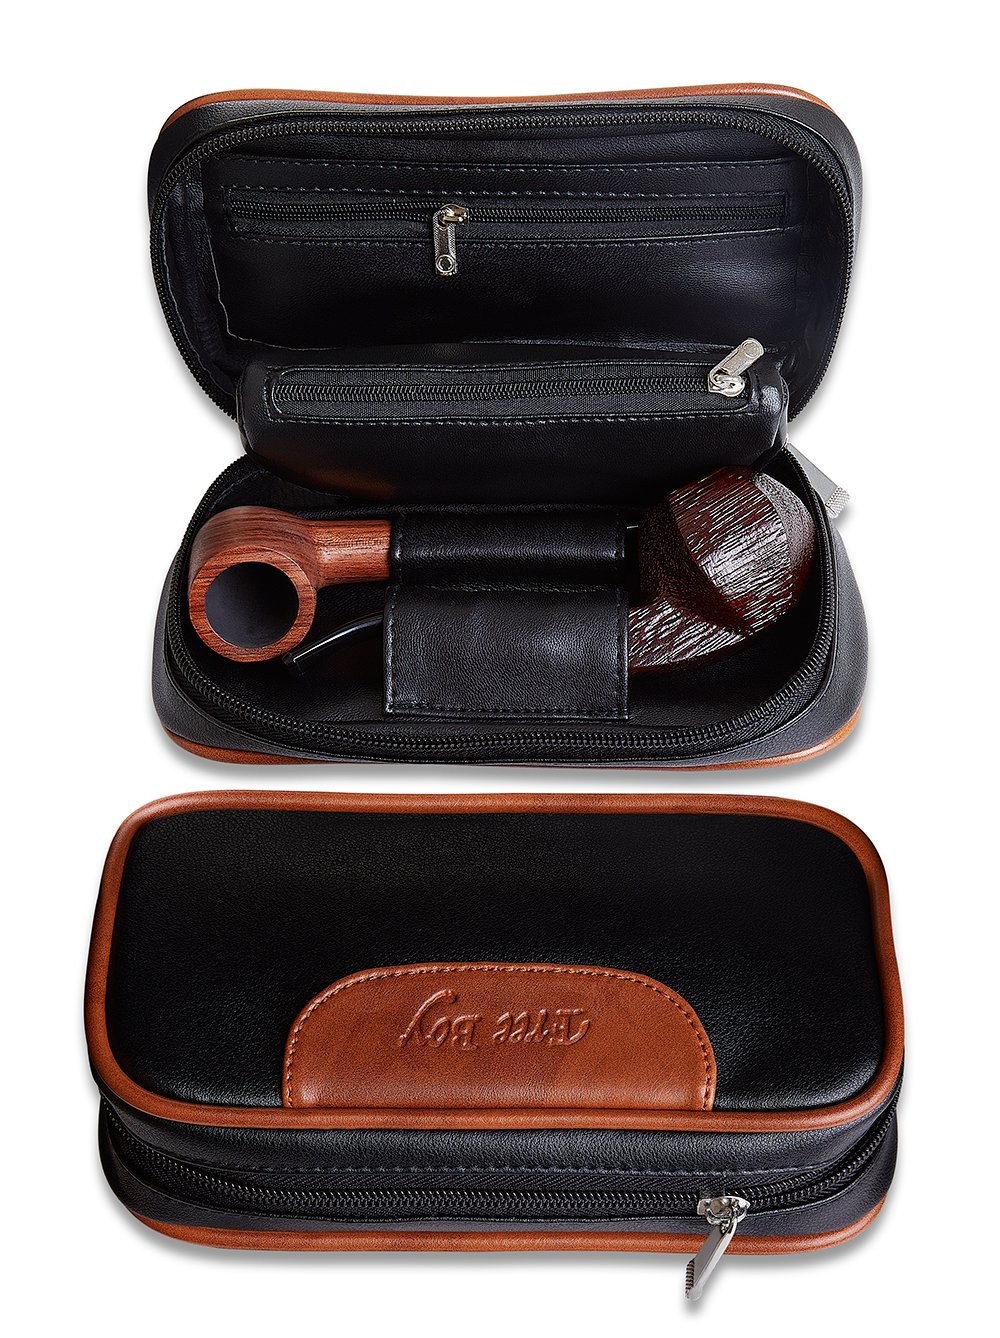 Tobacco Pipe Pouch, Free Boy Smoking Pipe Bag, Leather Case for 2 Pipes, Filter and Cleaner Tool